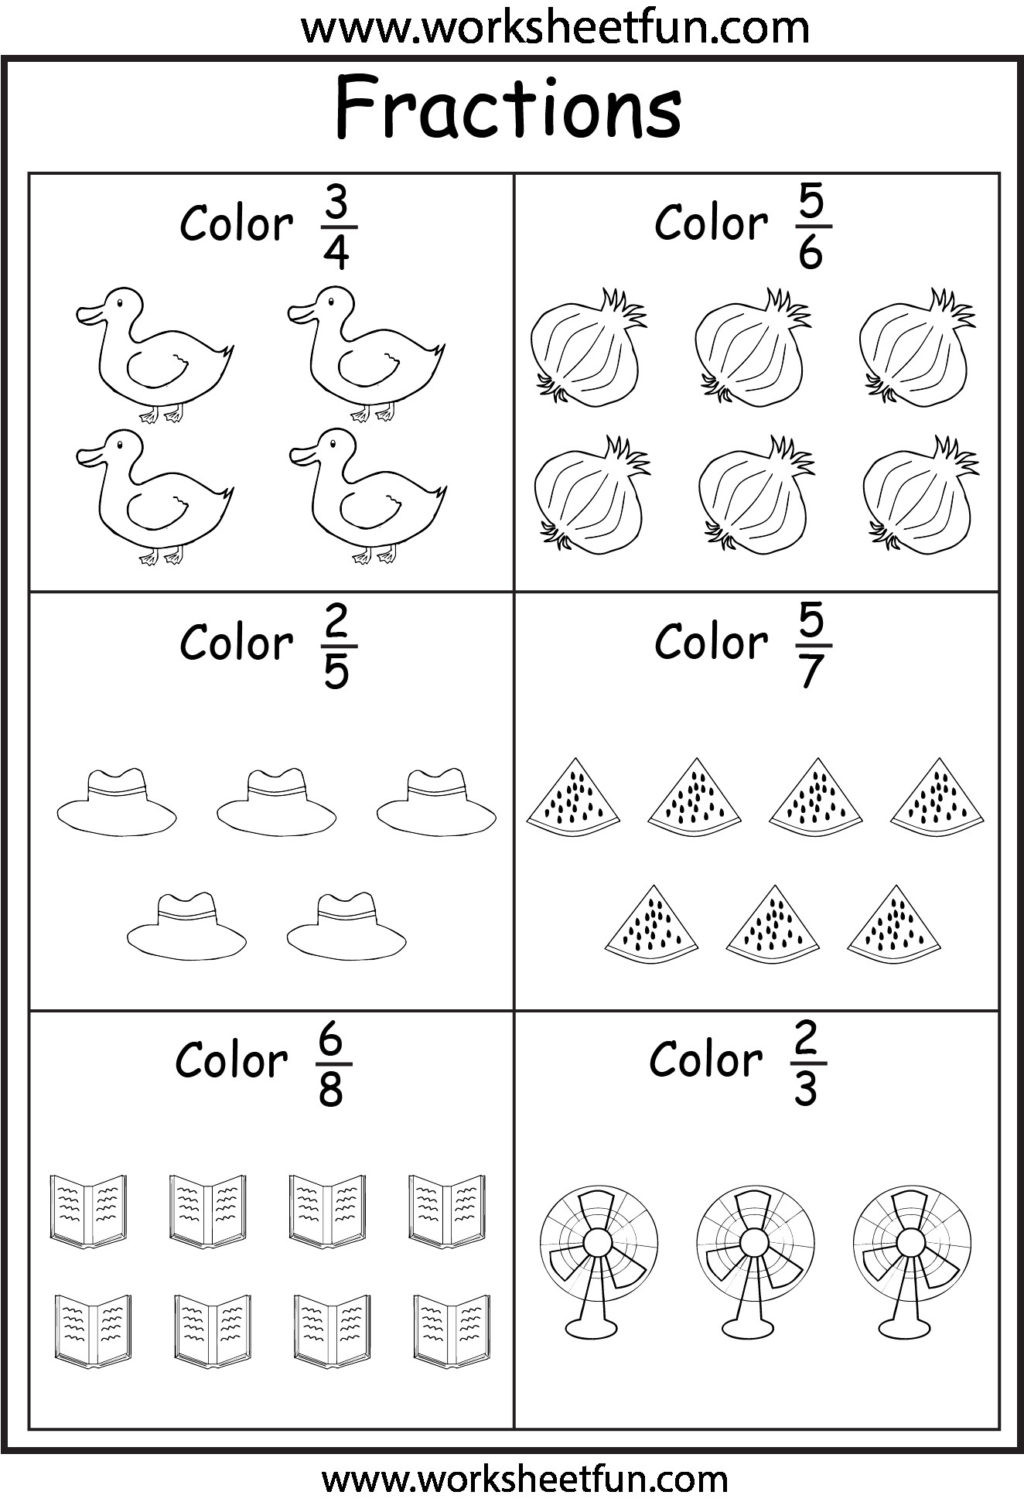 Fractions Worksheets 2nd Grade Worksheet Second Gradetions Worksheets Worksheet Free Math